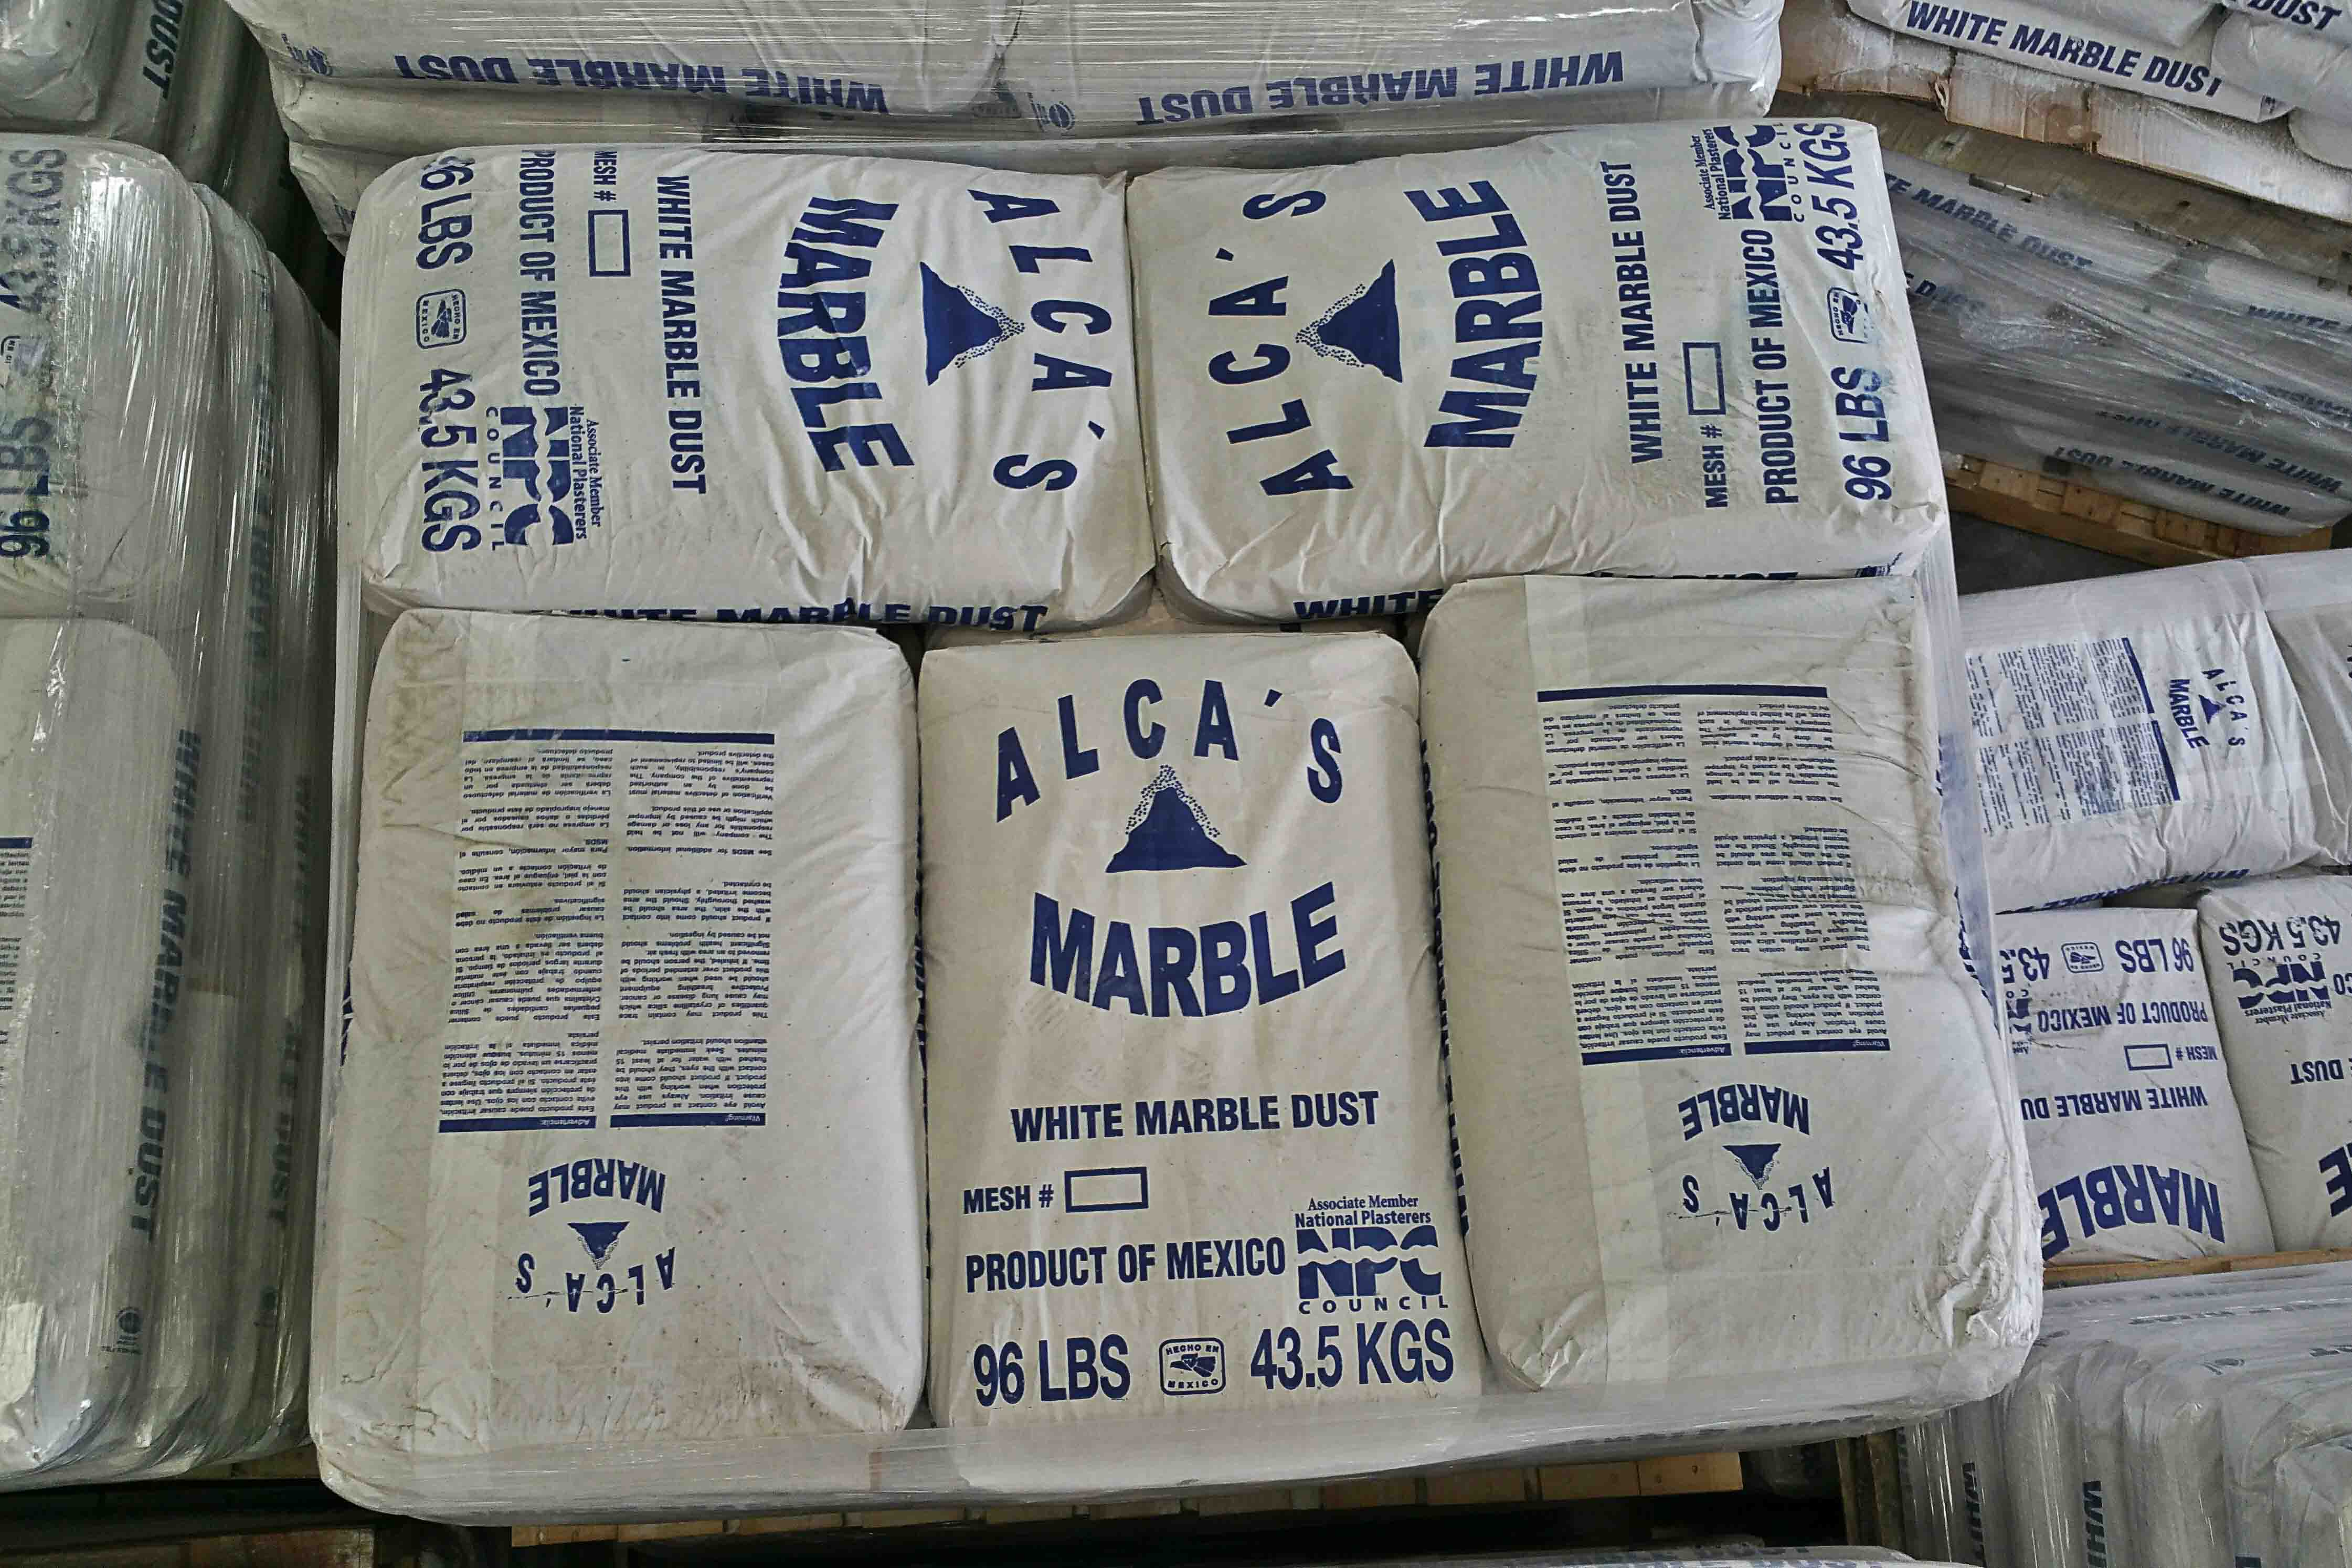 Alcas Marble Marble Dust White